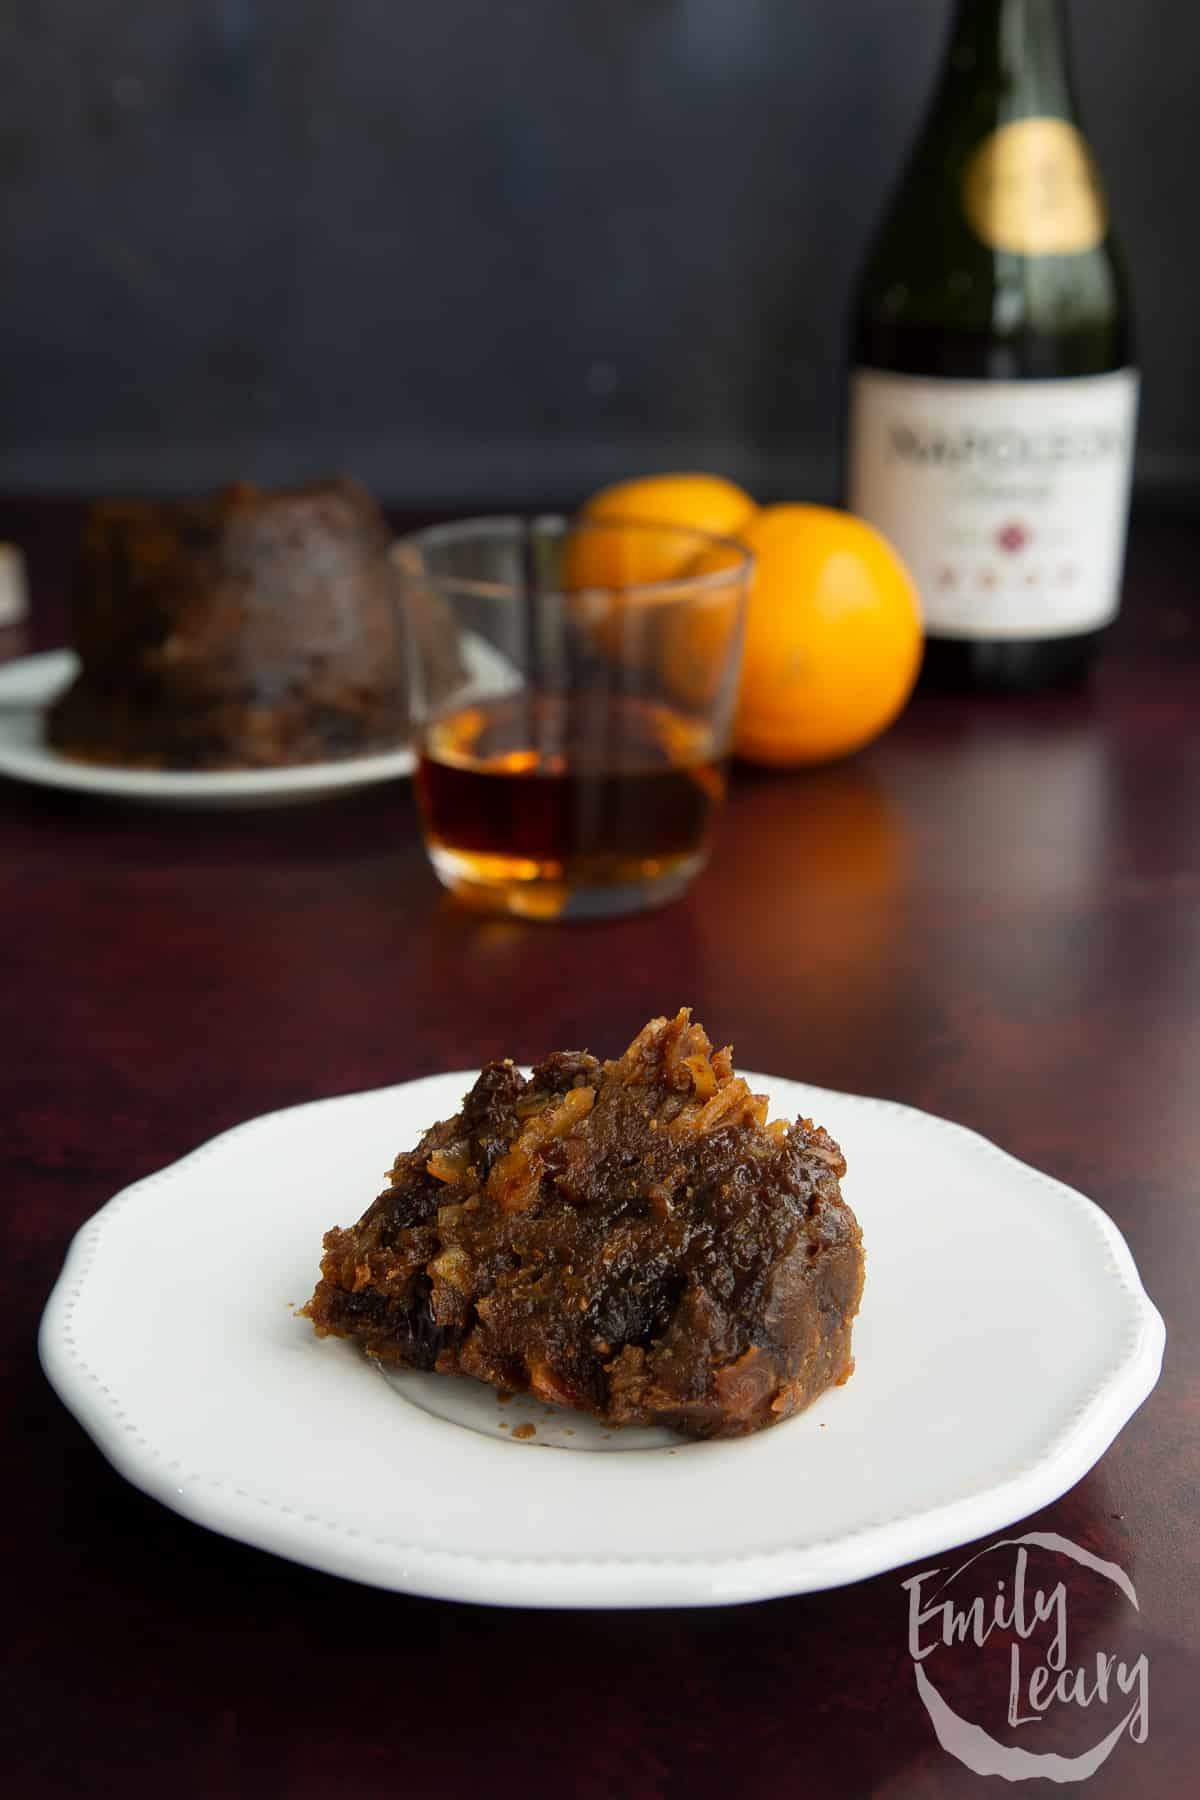 A piece of vegan Christmas pudding on a small white plate.